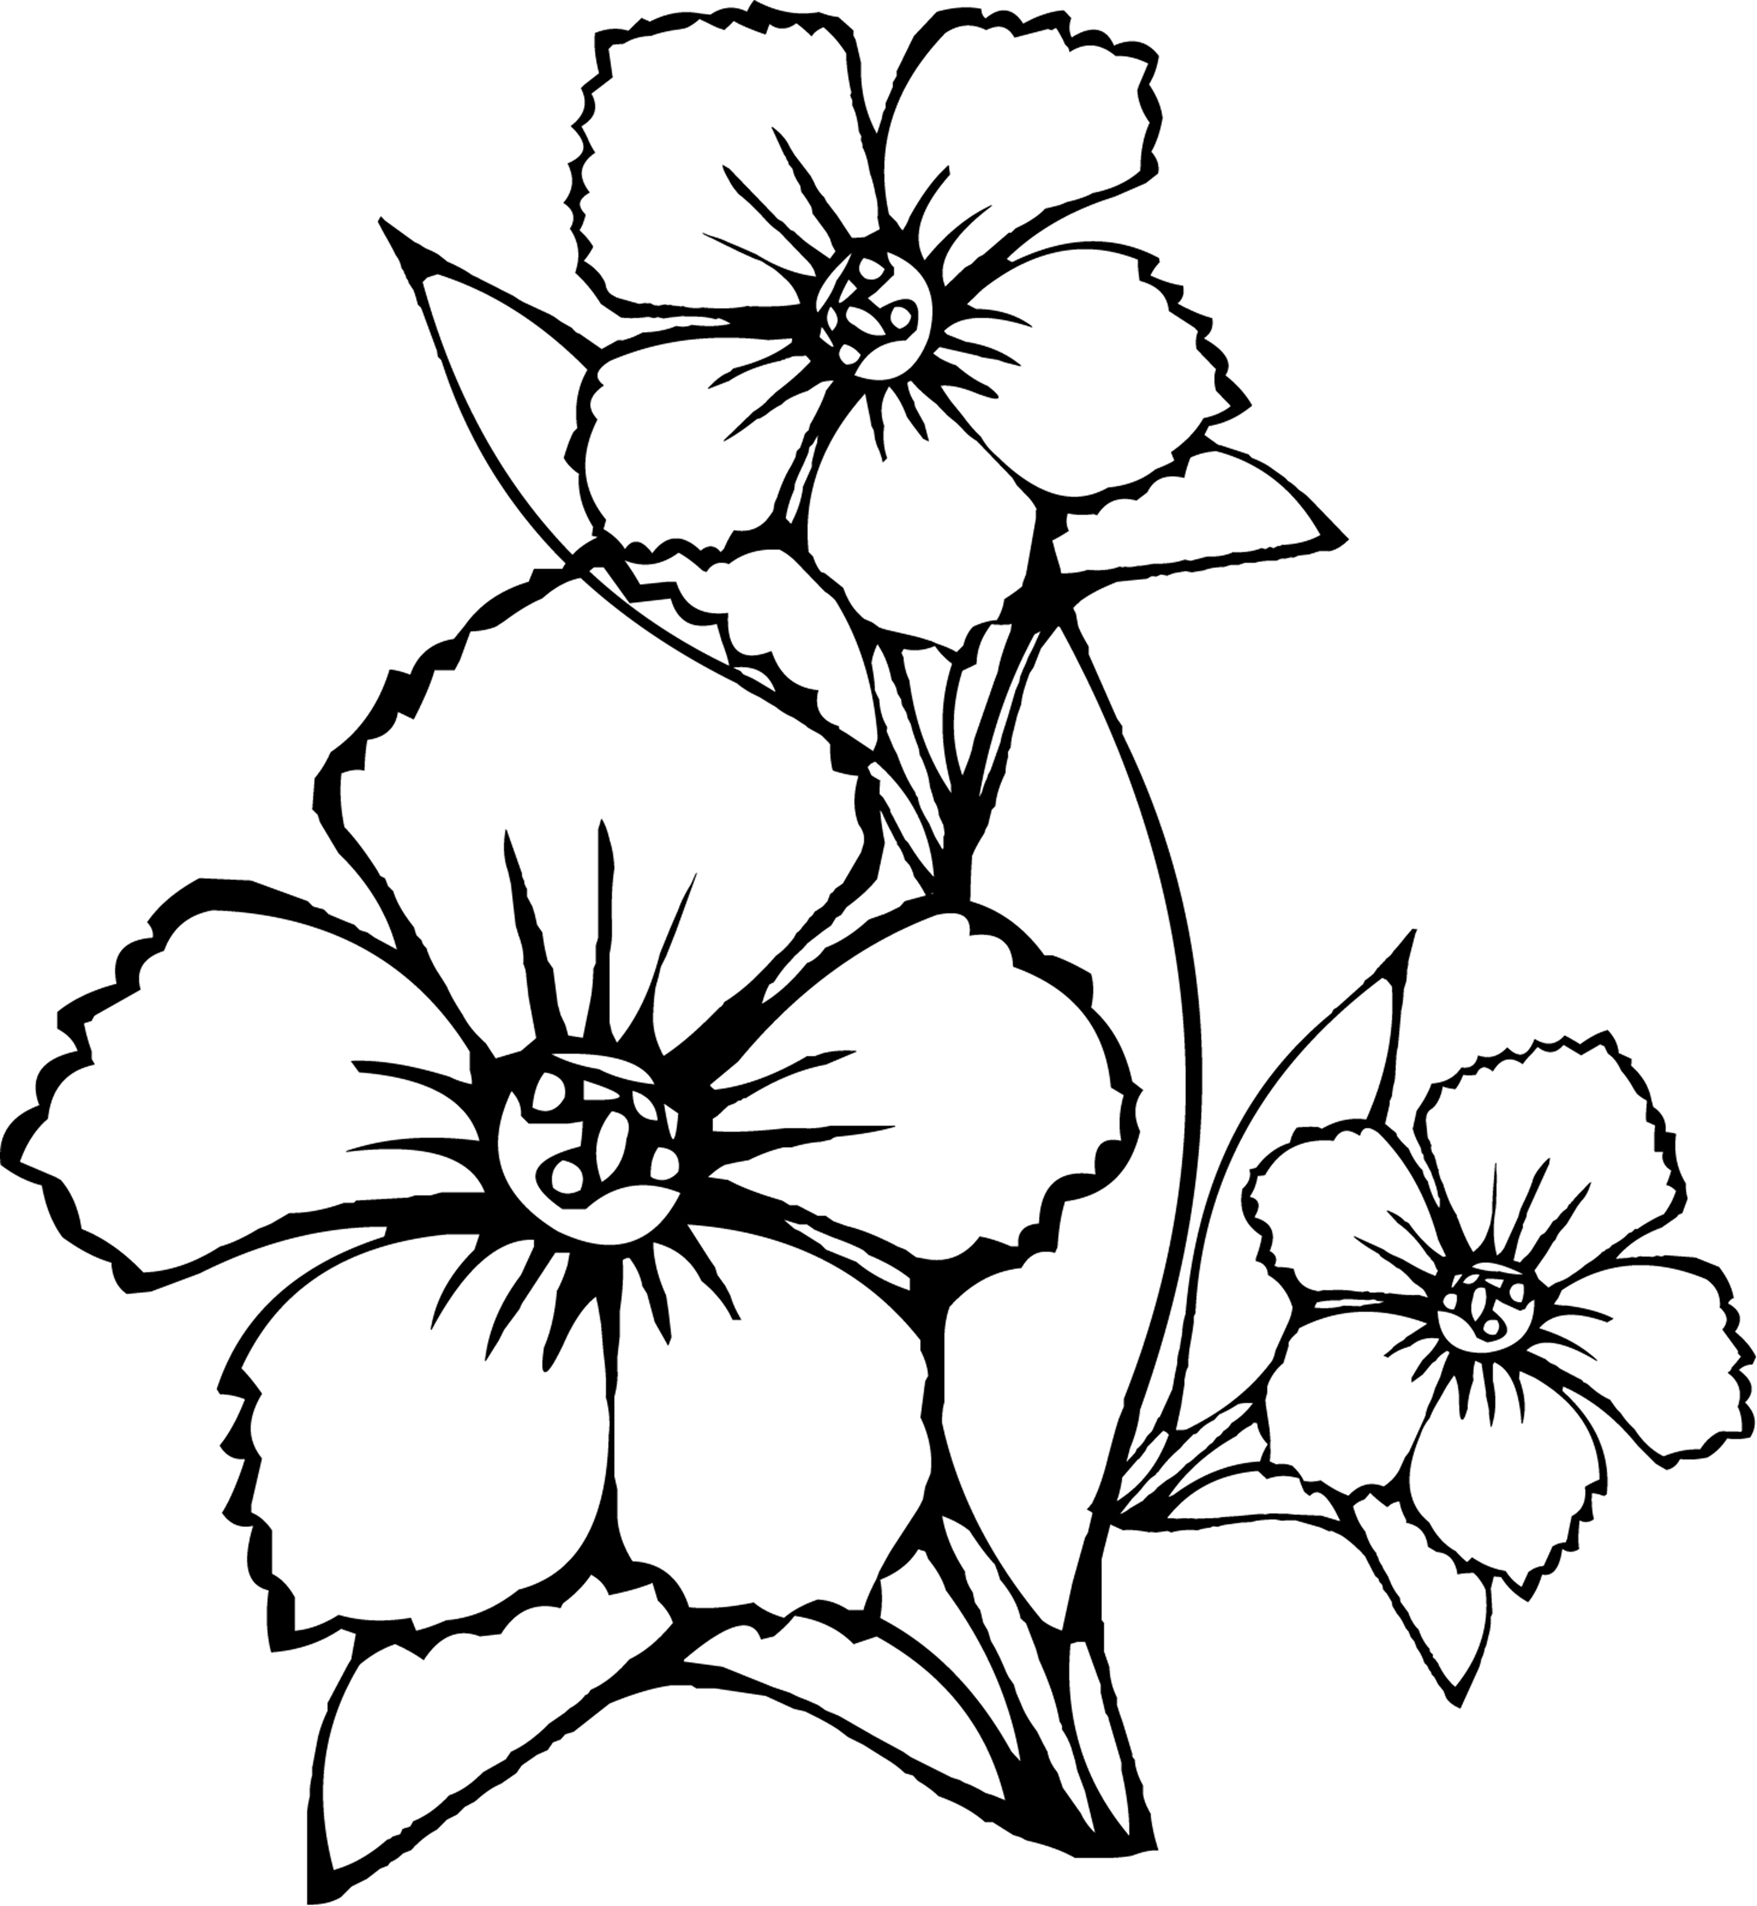 colouring pictures of plants free printable flower coloring pages for kids best of plants colouring pictures 1 1